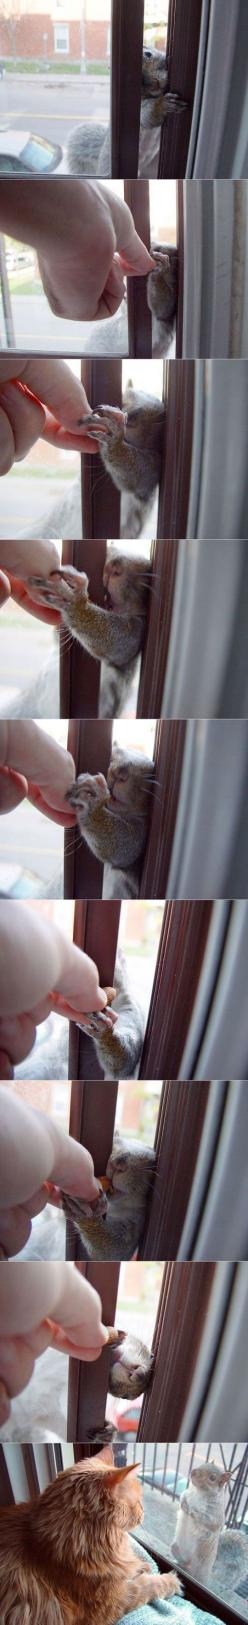 I adore the last picture.: Peanuts Lol, Animals, Critter, Funny Cats, Squirrels Chipmunks, Squirrel Friend, Cute Squirrels, Funny Squirrel Nuts Window